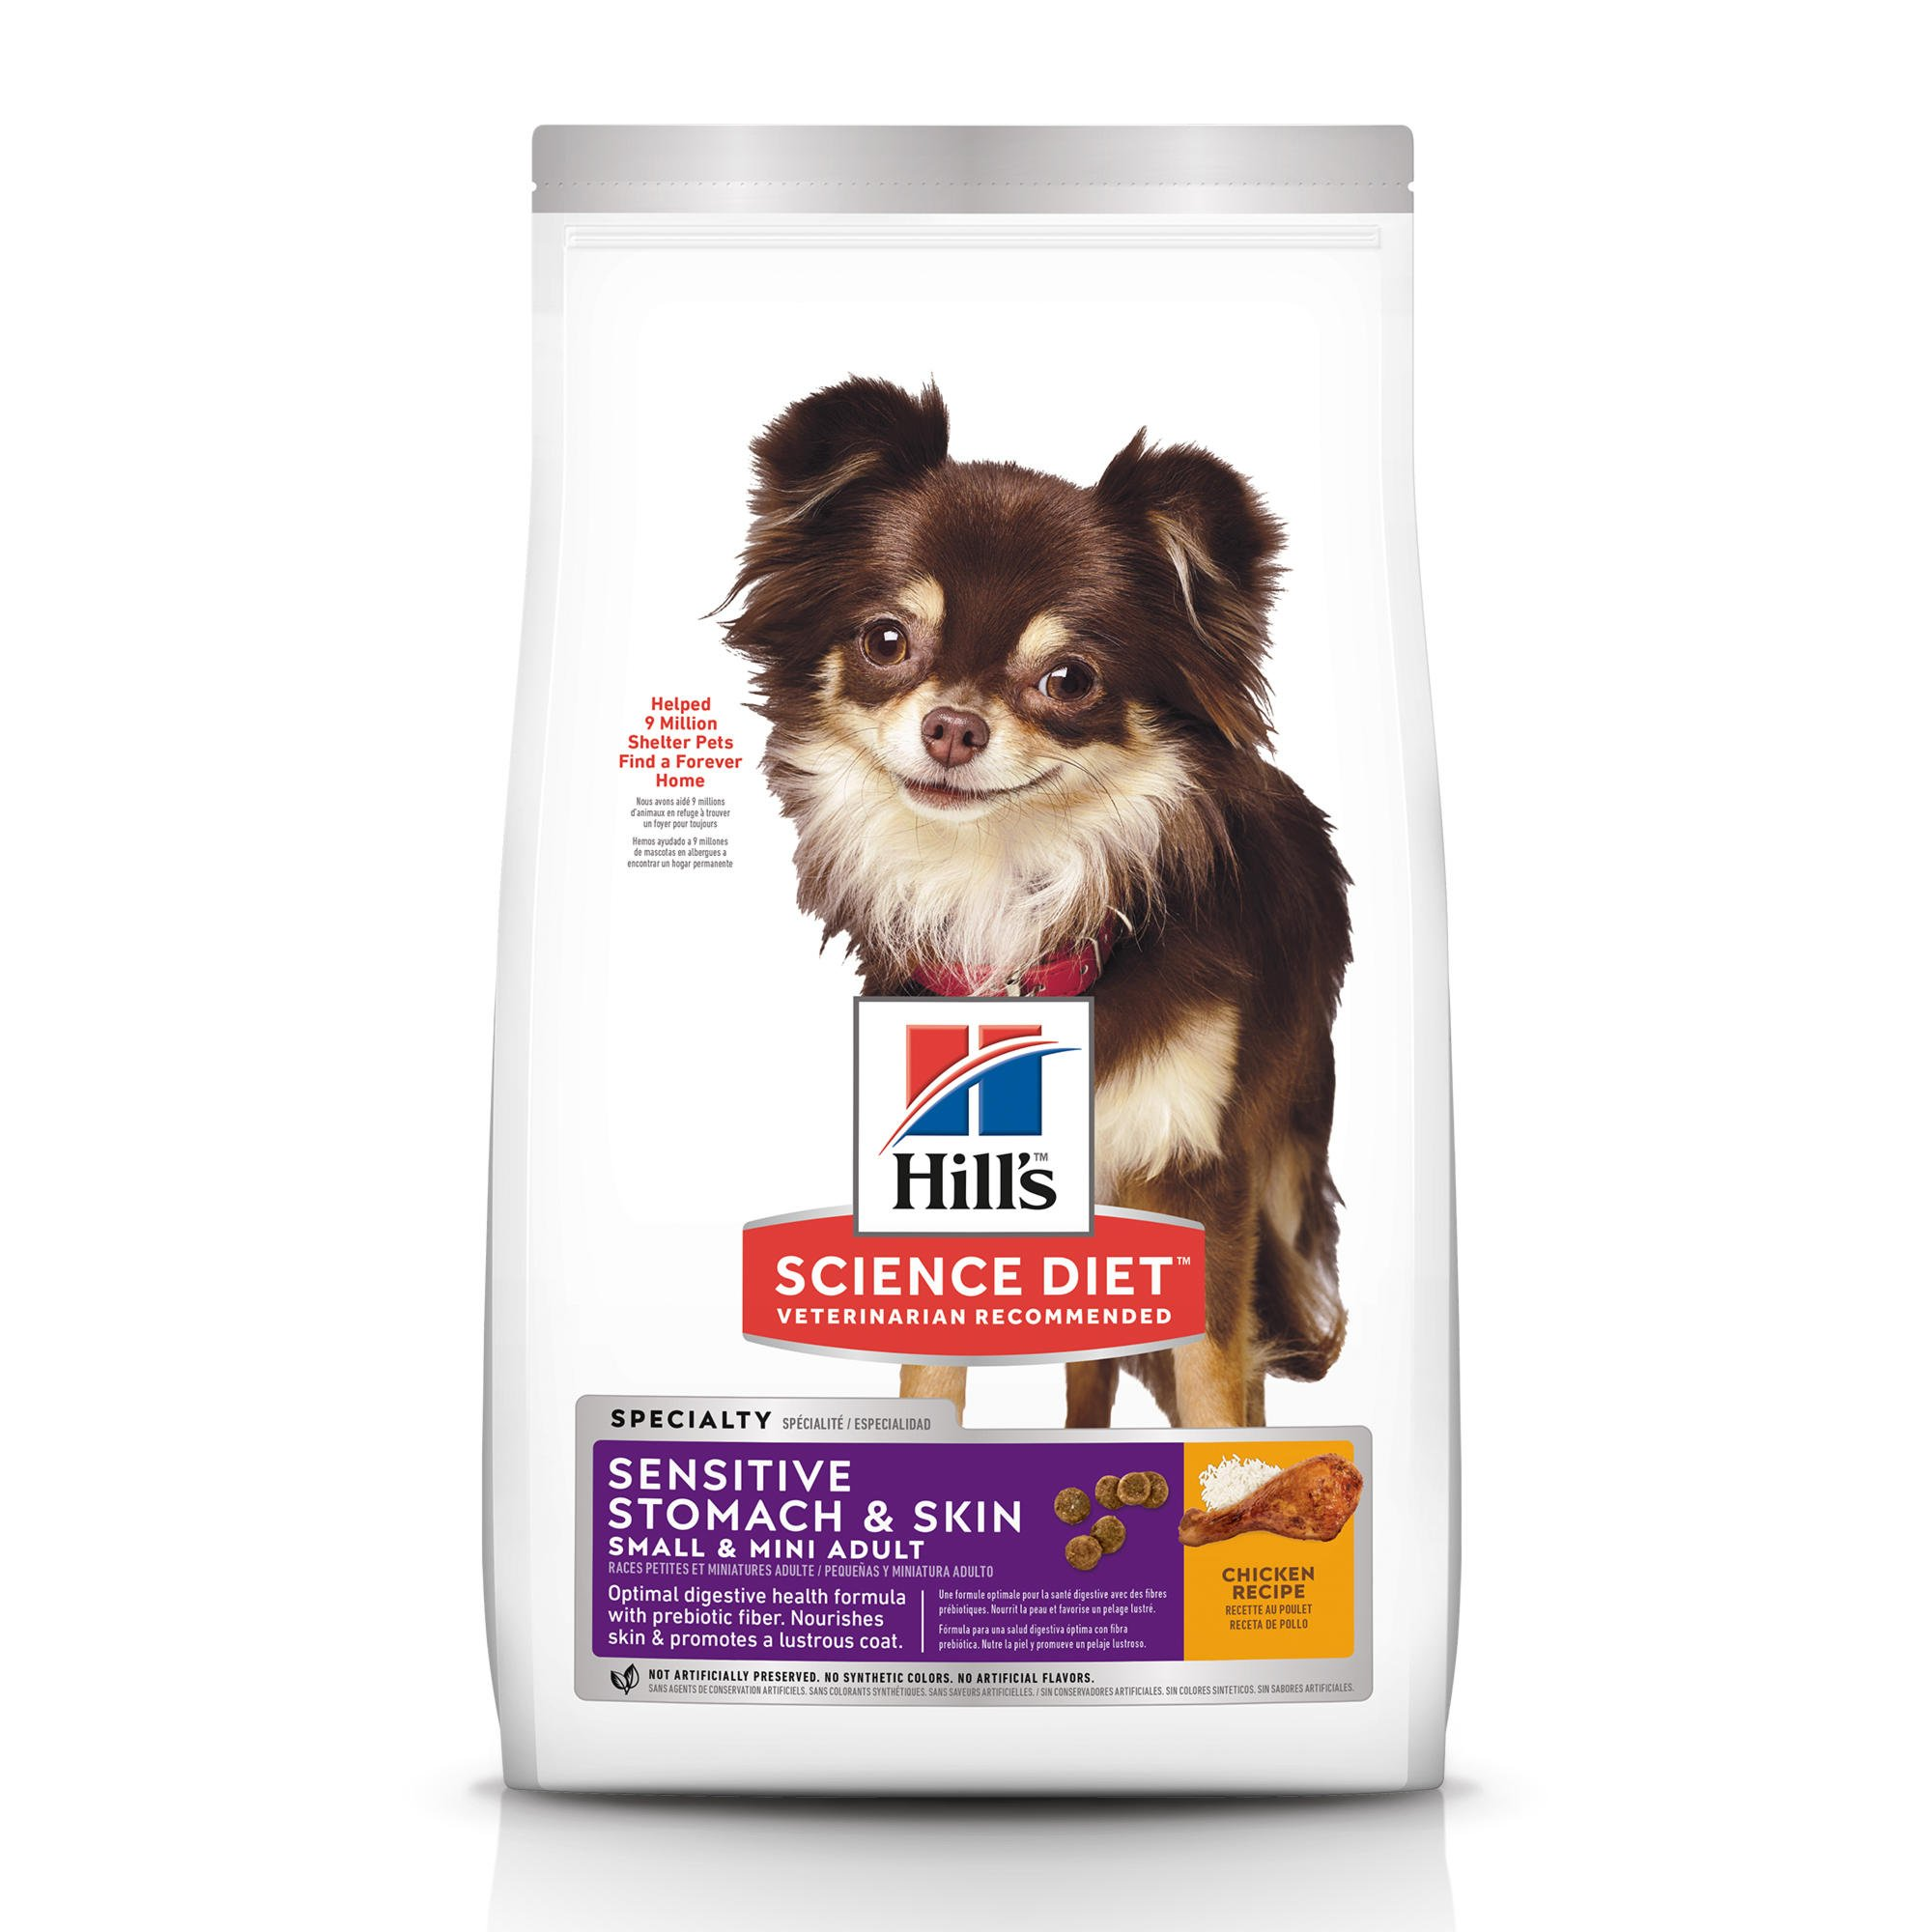 Hill's Science Diet Adult Sensitive Stomach & Skin Small & Mini Chicken Recipe Dry Dog Food, 15 lbs., Bag